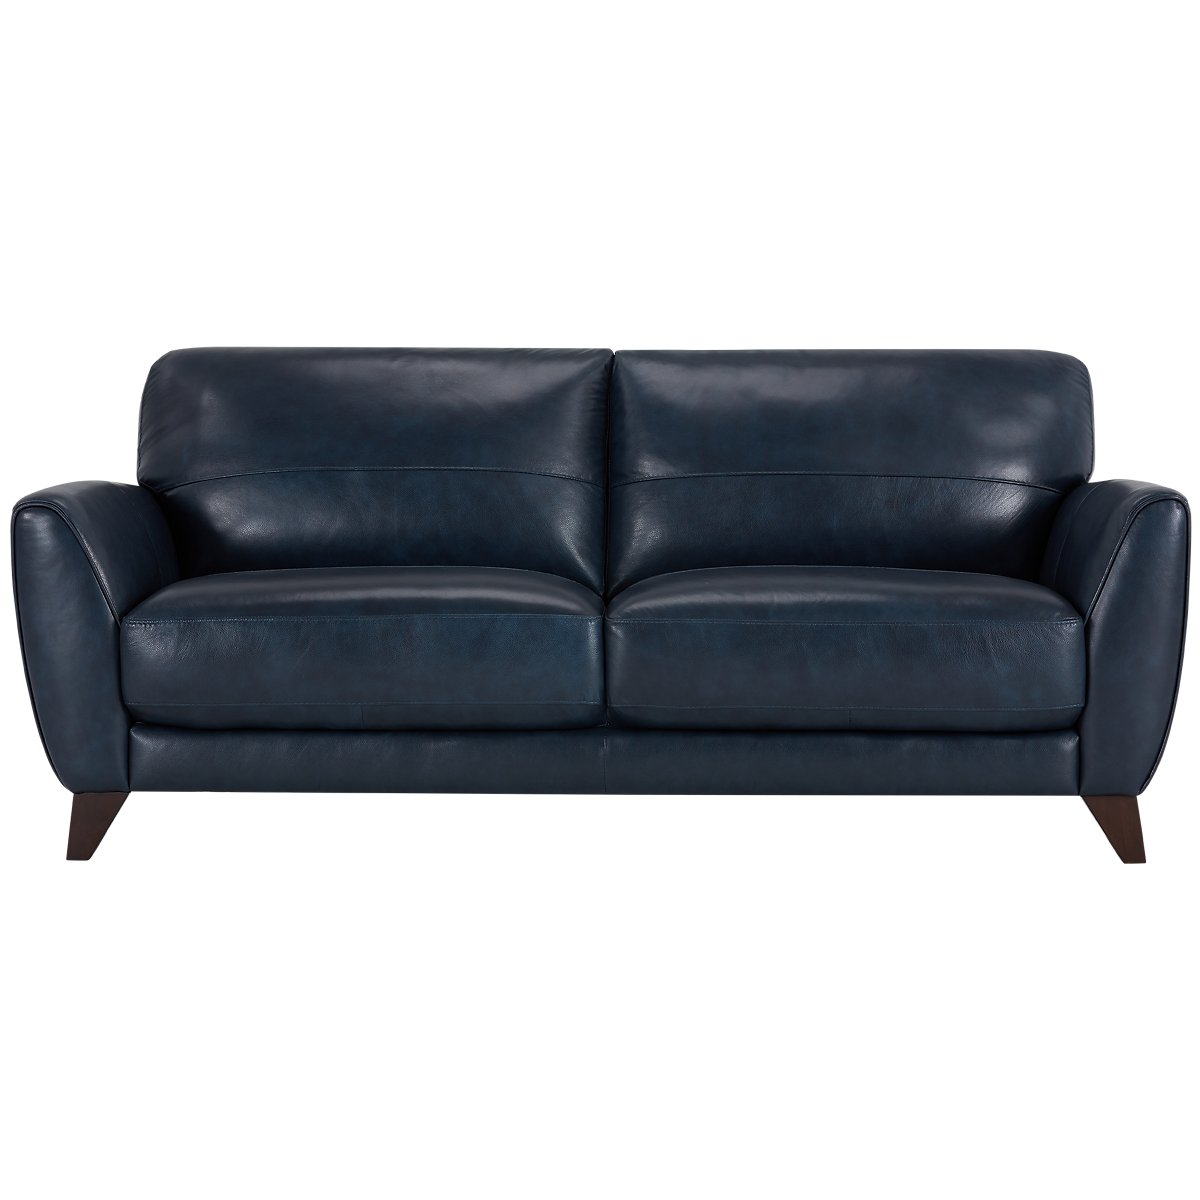 City Furniture Ezra Dark Blue Leather Sofa